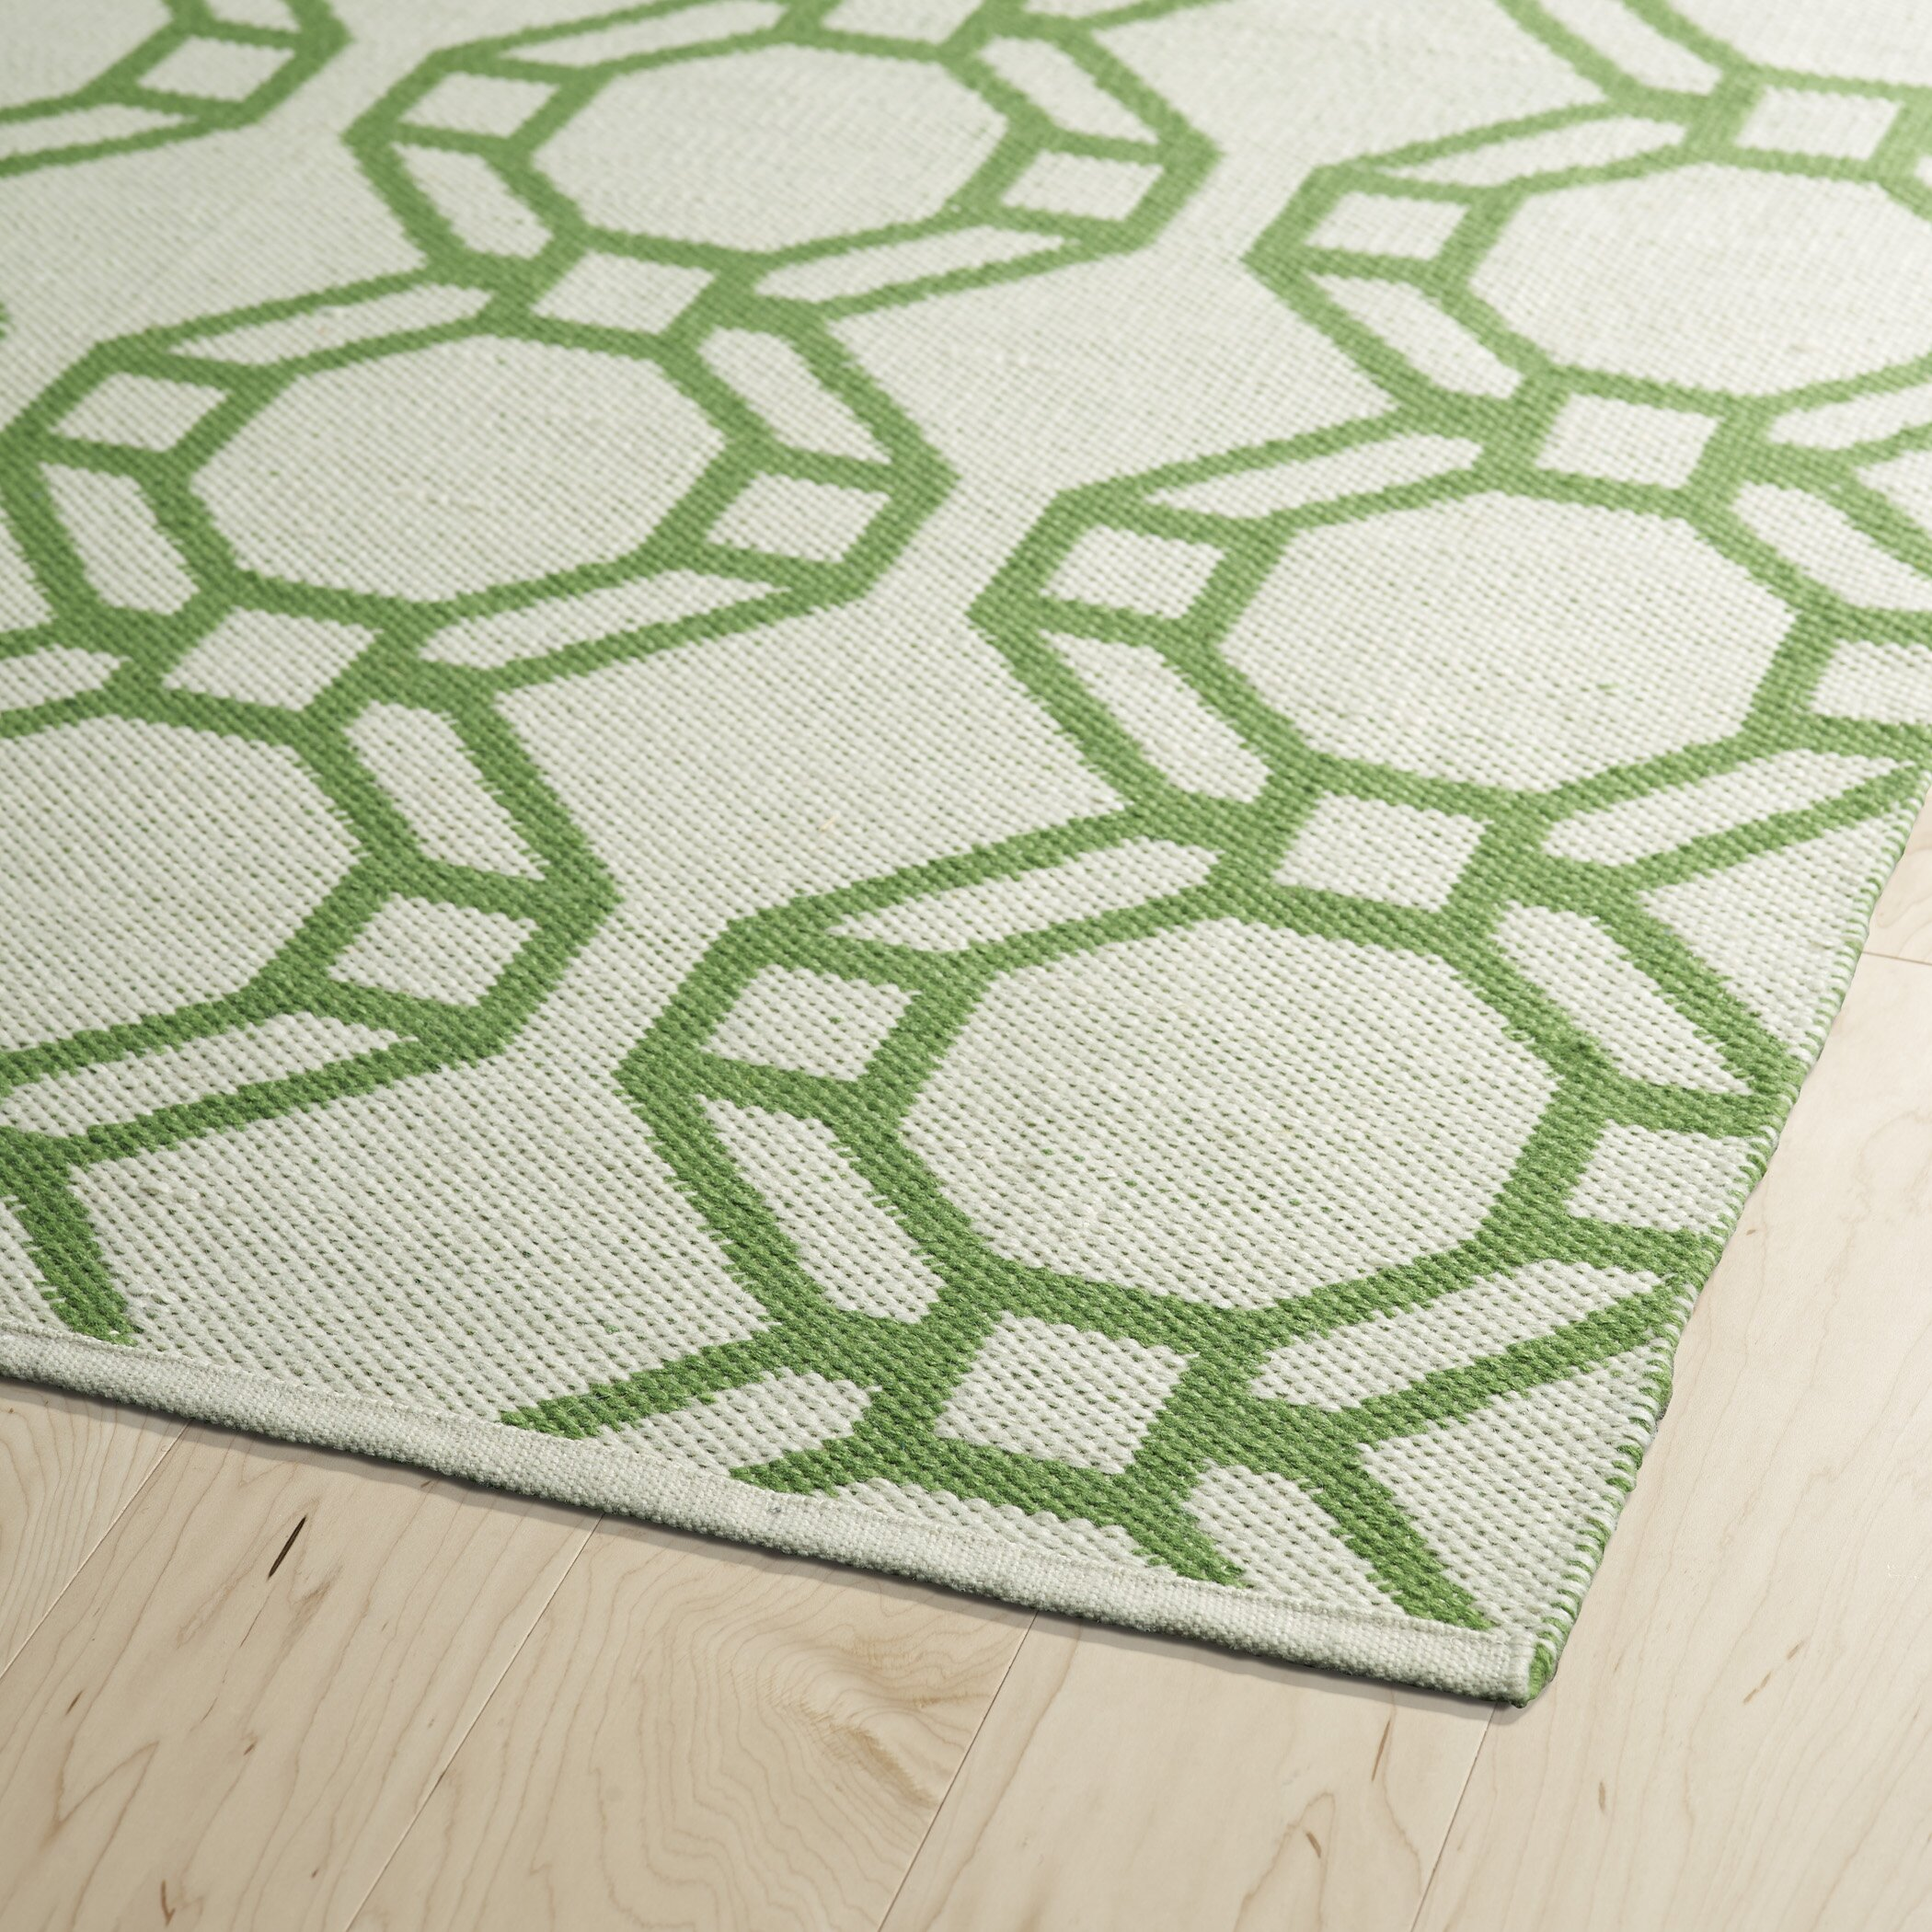 Lime Green Outdoor Area Rug: Brisa Cream/Lime Green Indoor/Outdoor Area Rug